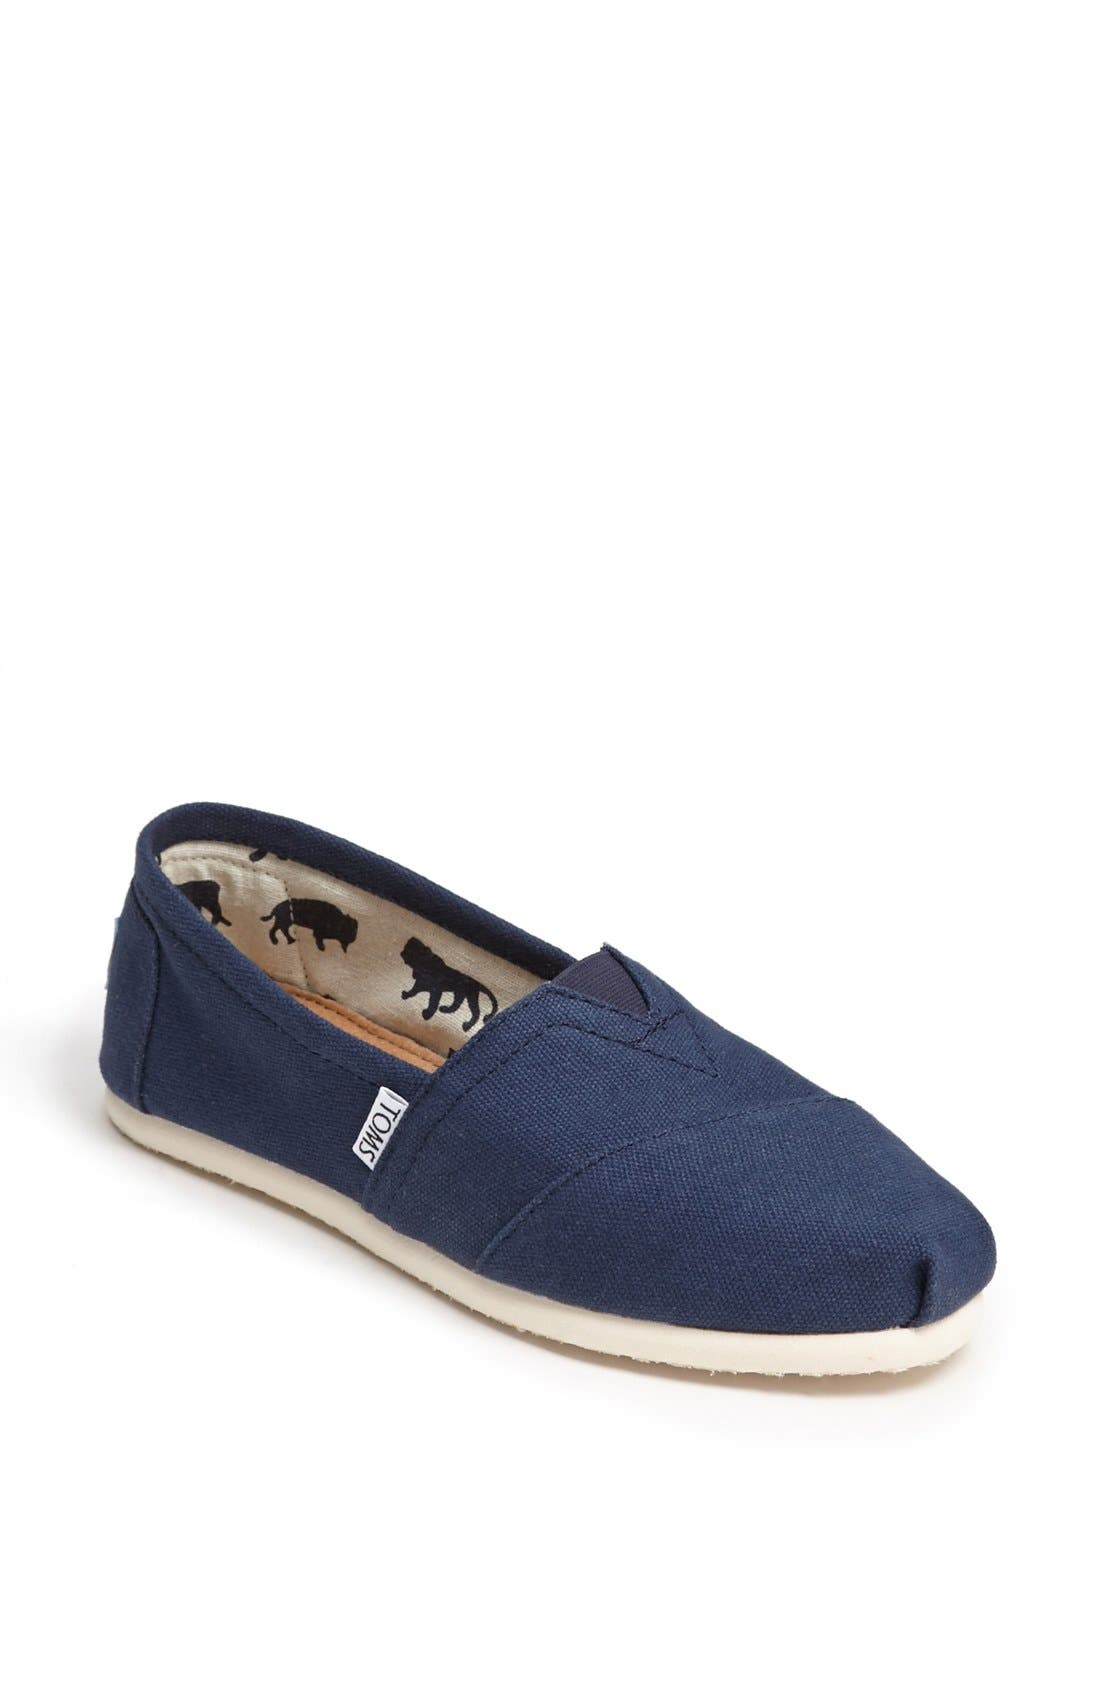 Toms Classic Canvas Slip-On- Blue